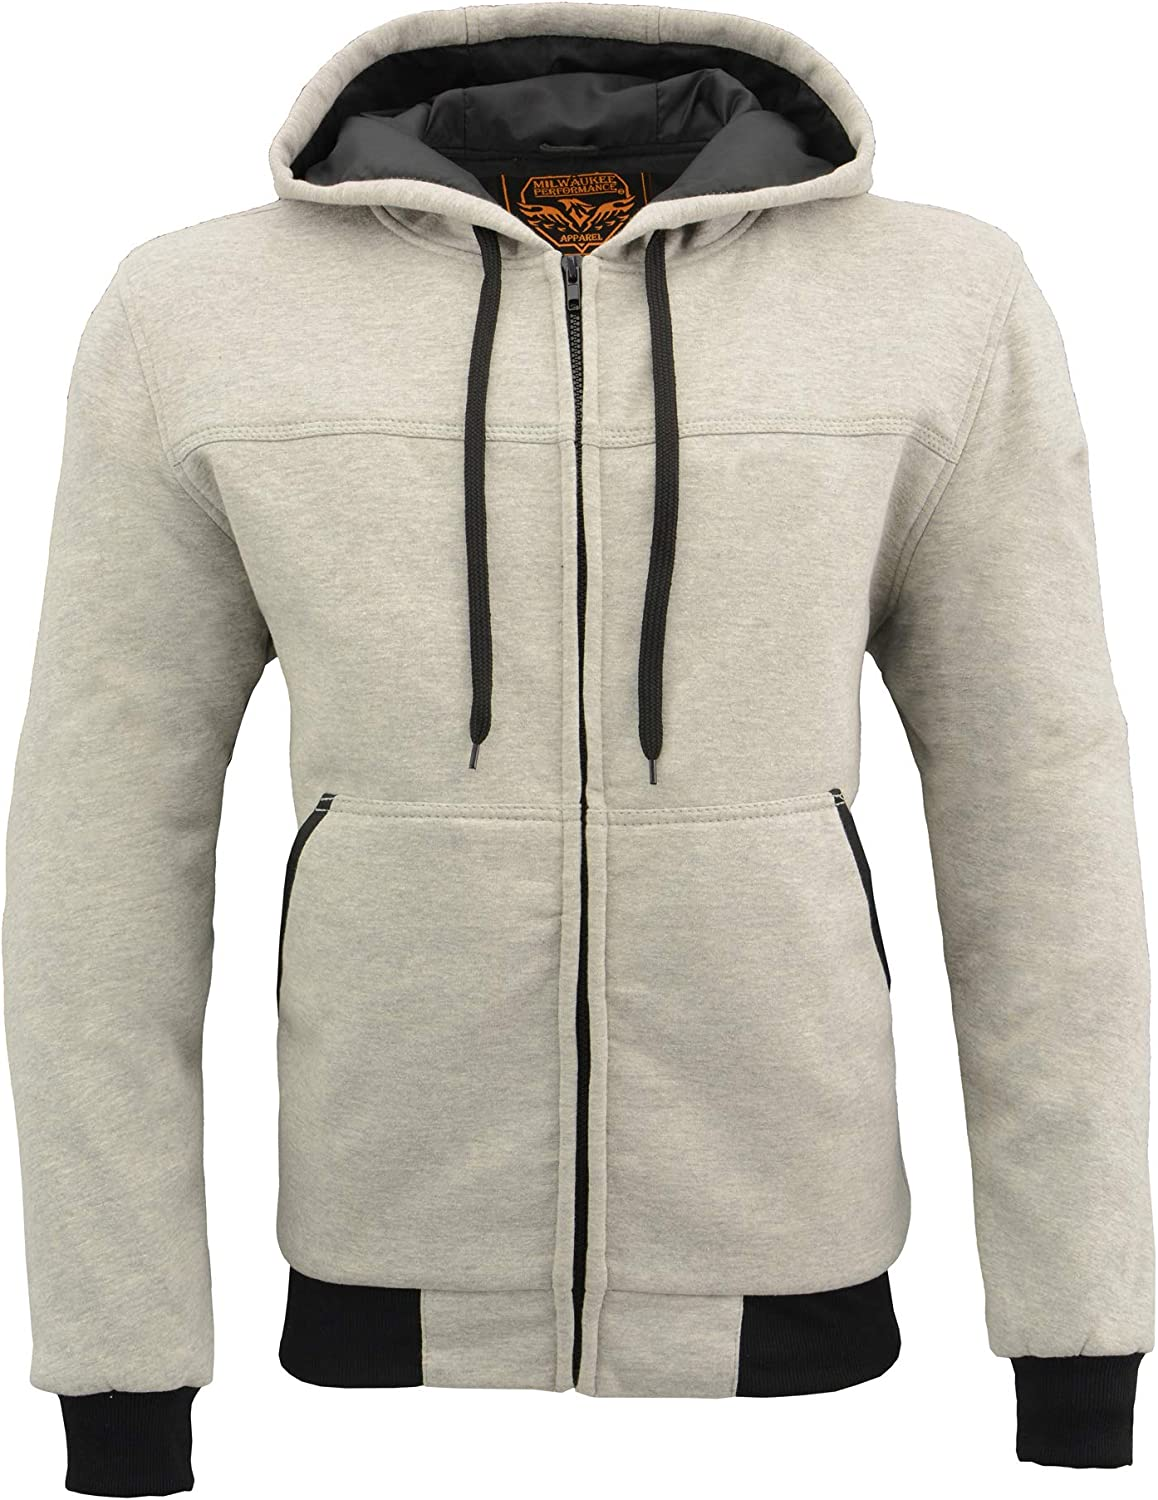 SILVER, LG Milwaukee Leather Zippered Hoodie mens With CE Approved Removable Reinforced Shoulder /& Elbows Pads